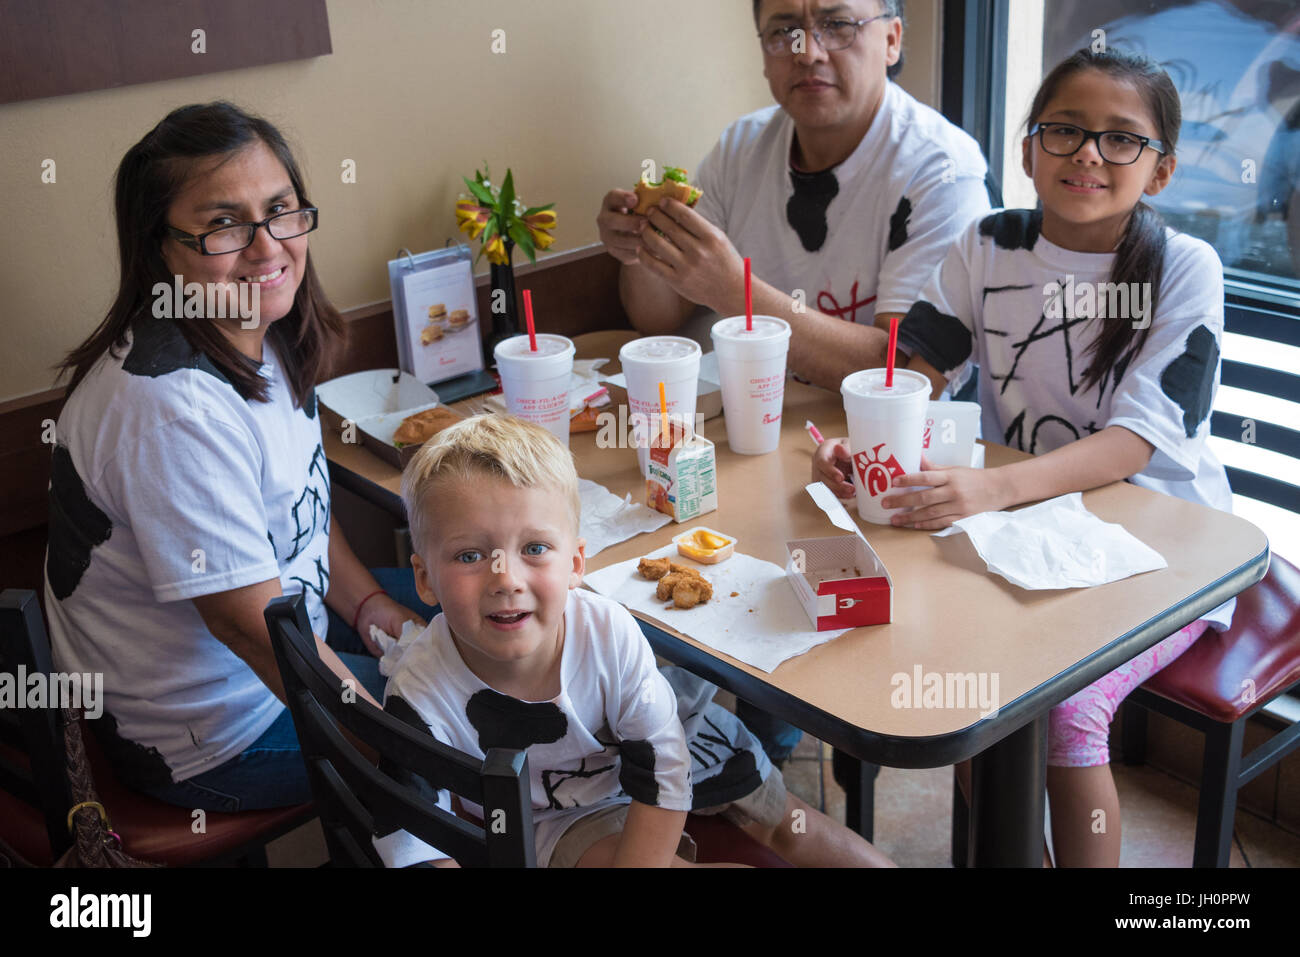 Chick-fil-A fans wearing homemade cow outfits for Chick-fil-A's Cow Appreciation Day. - Stock Image